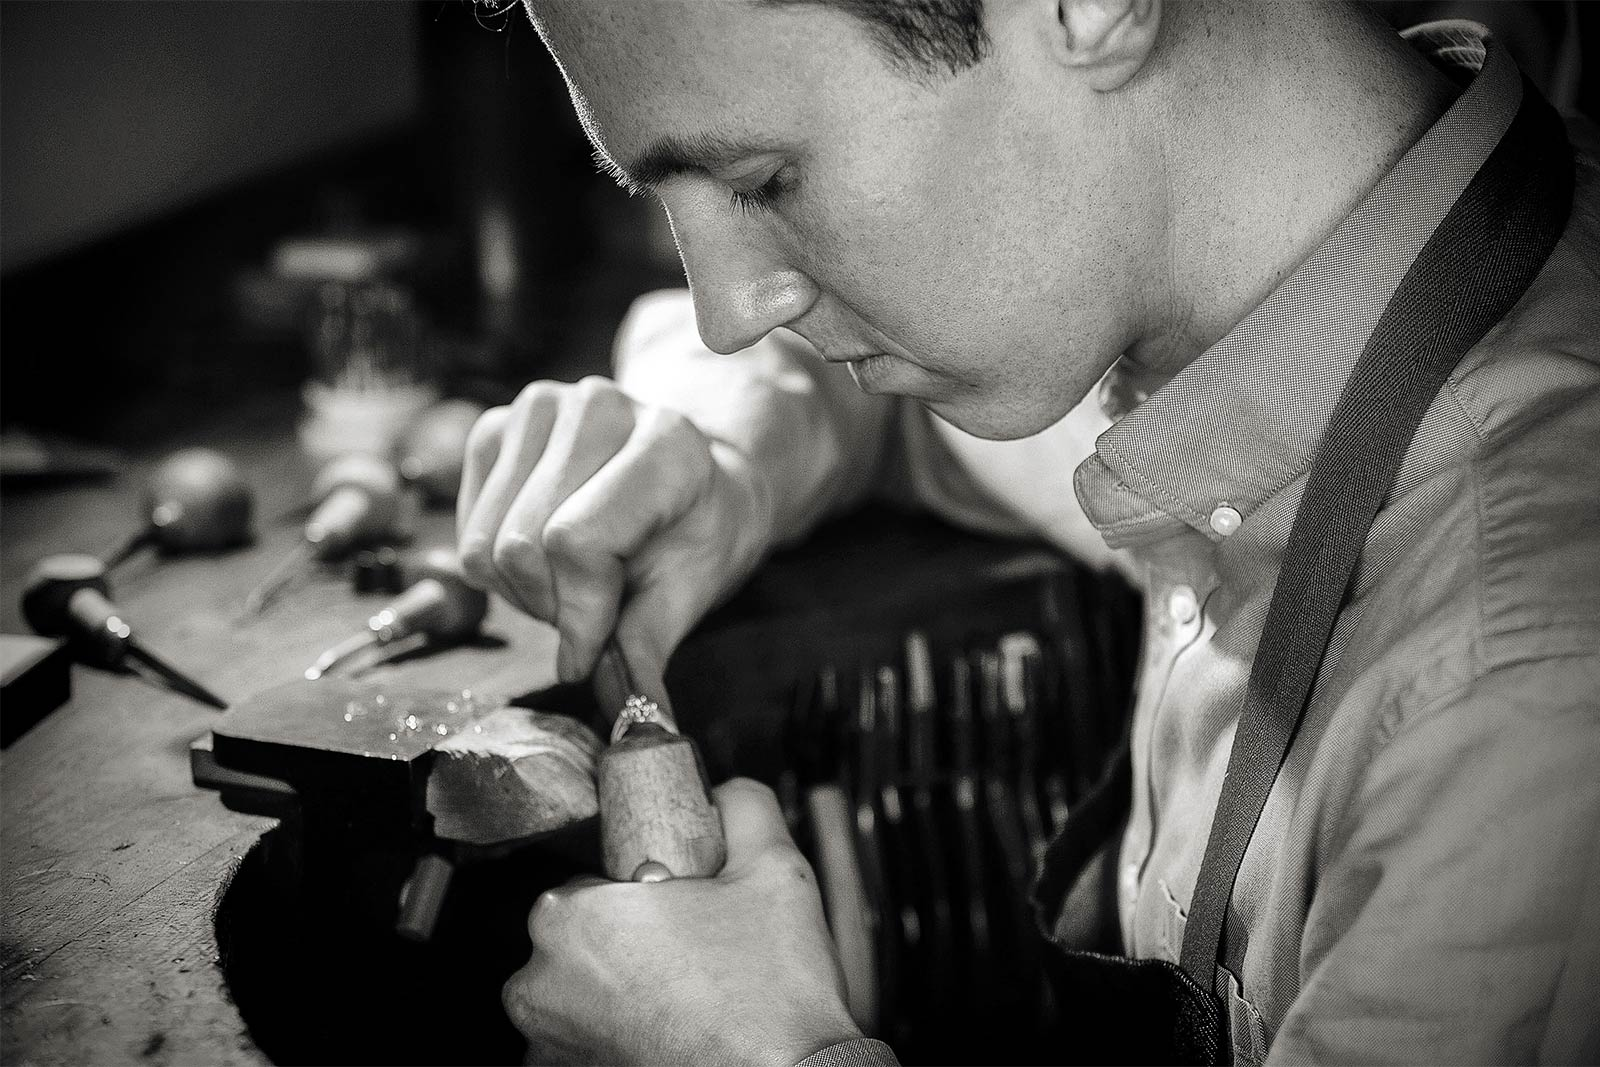 Auckland jewellery designers Julian Bartrom specialising in custom jewellery and custom made engagement ring design